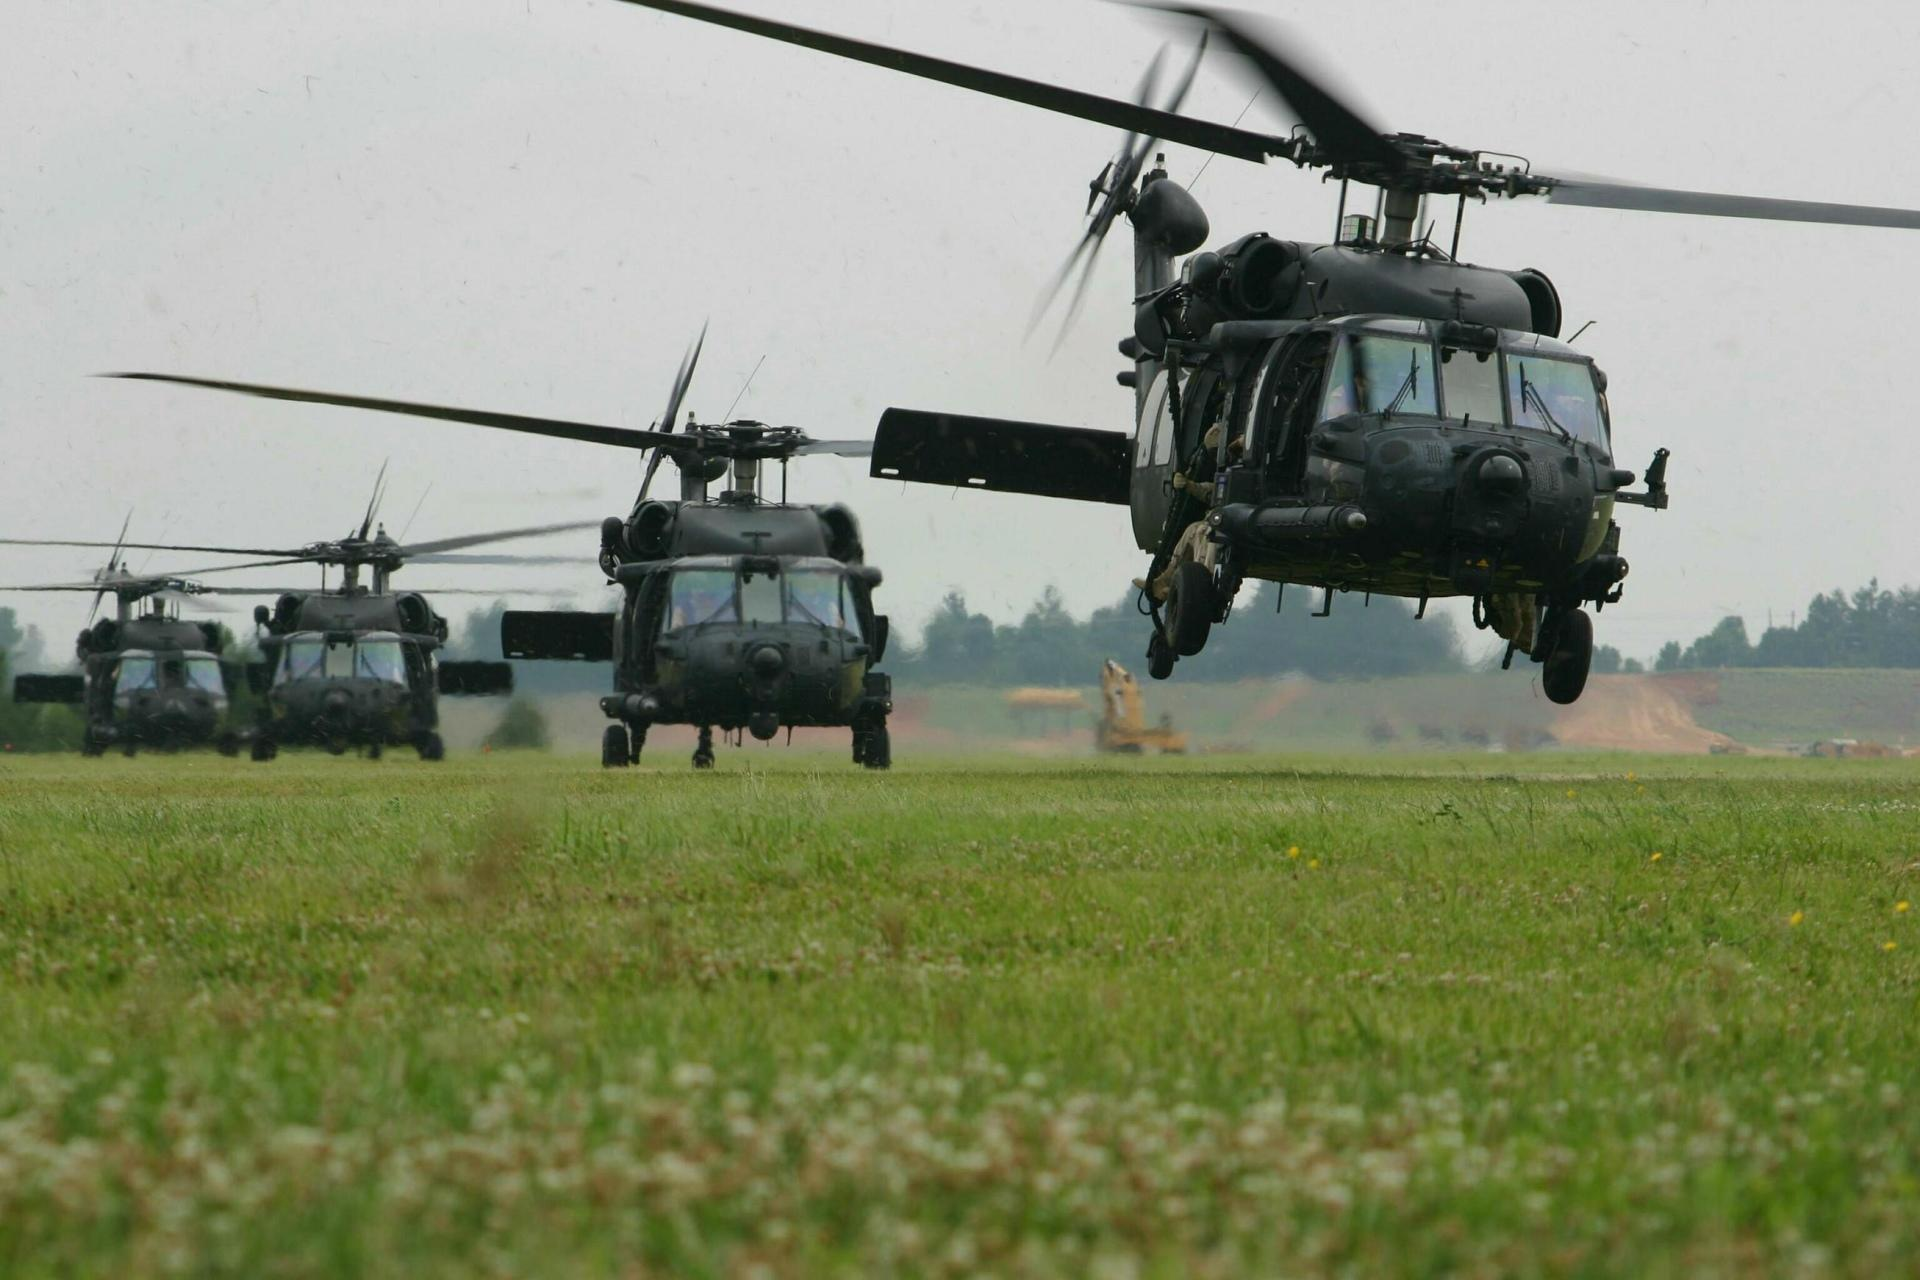 black hawk helicopter Find great deals on ebay for helicopter black hawk and control helicopter shop with confidence.